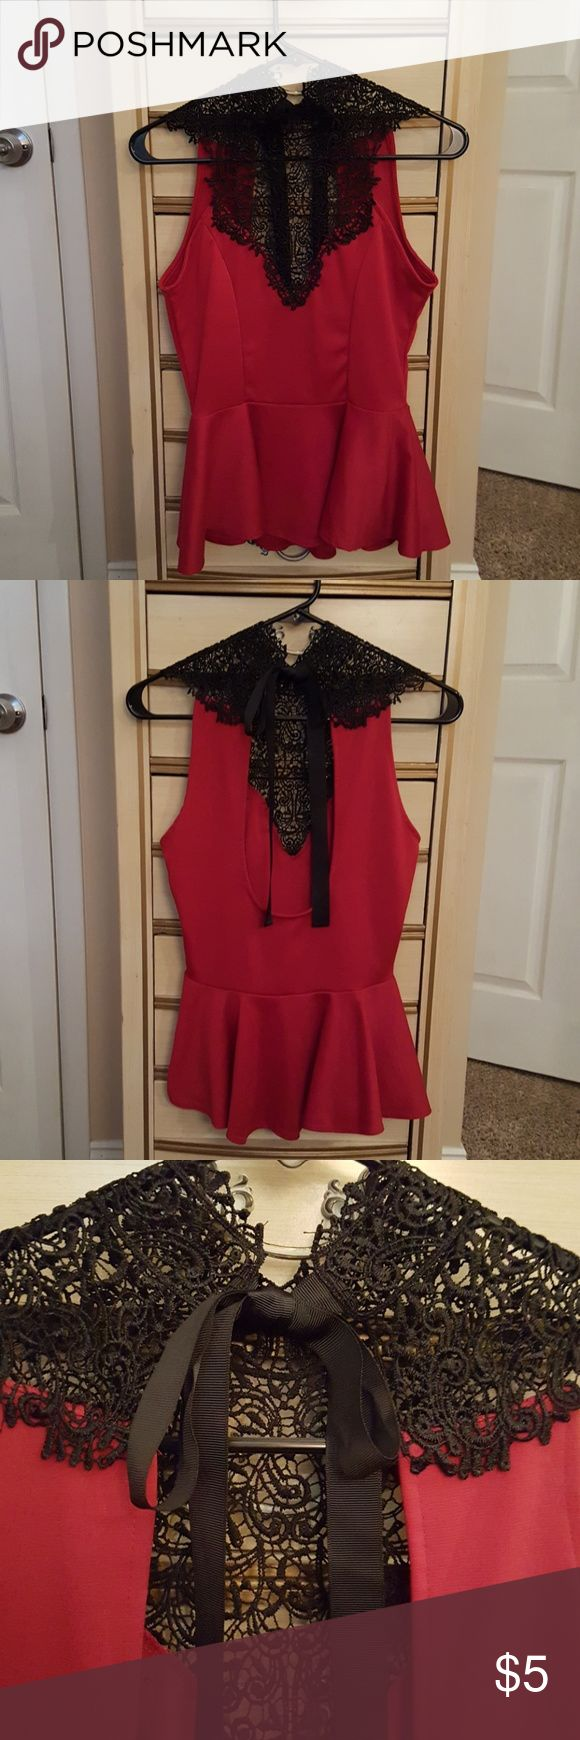 Red and black high neck peplum top Has a high neck with peplum bottom. Ribbon tie in back of neck and open back for more drama. Lace and sheer Arden B Tops Blouses